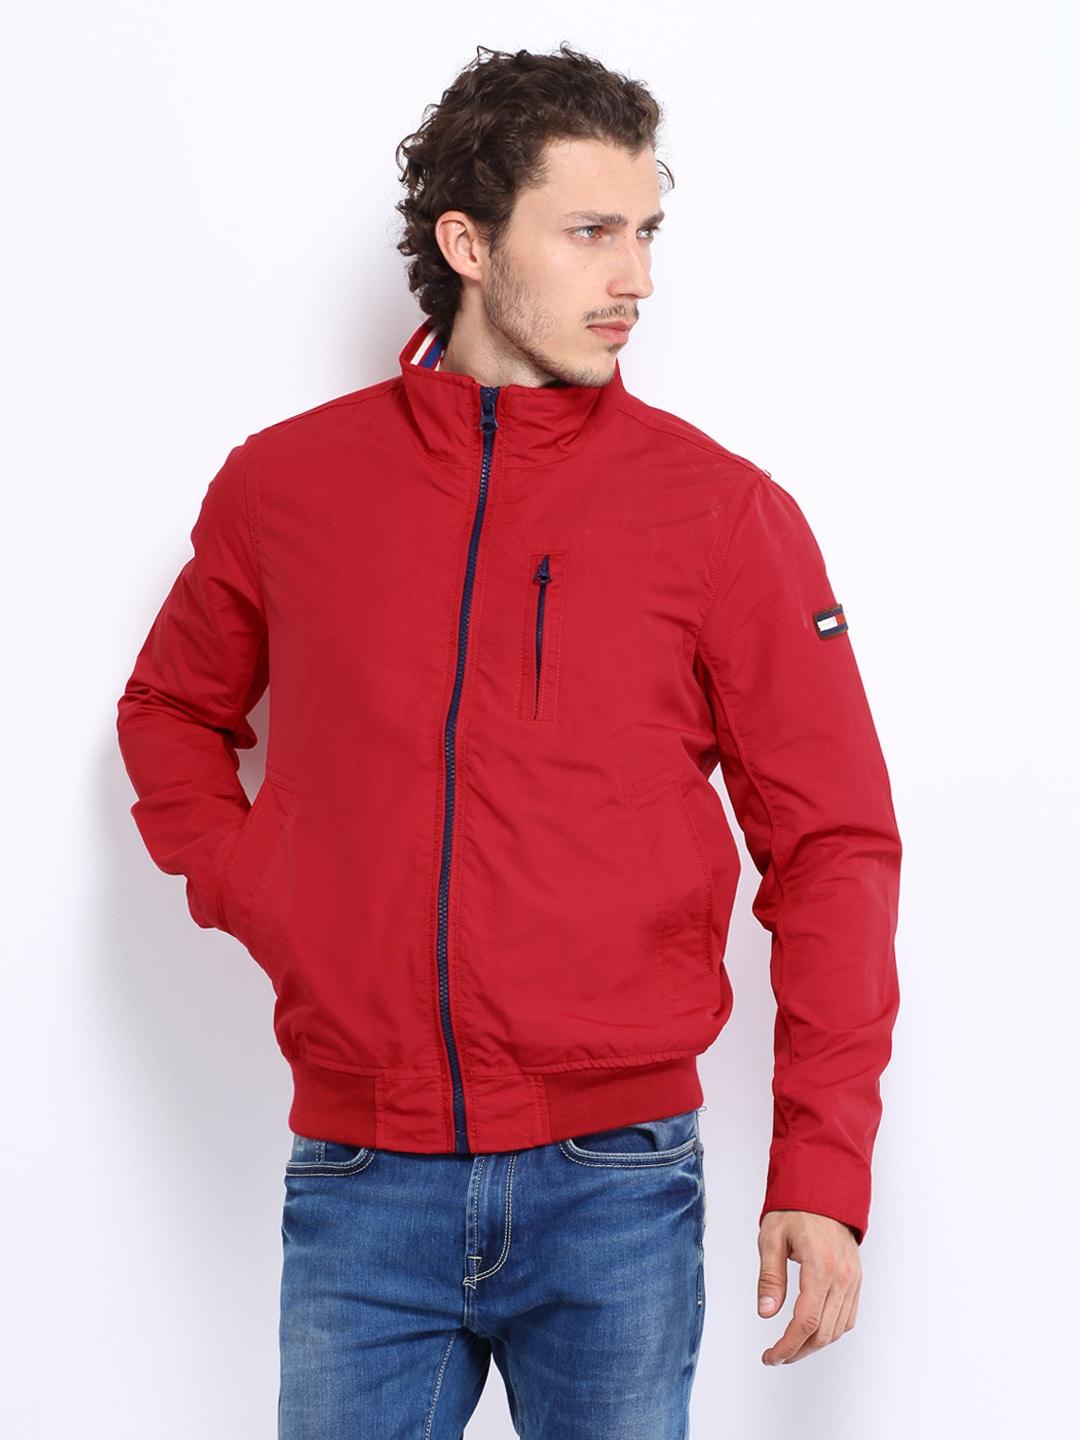 Tommy Hilfiger A4ato004 Men Red Bobby Jacket Best Price In India